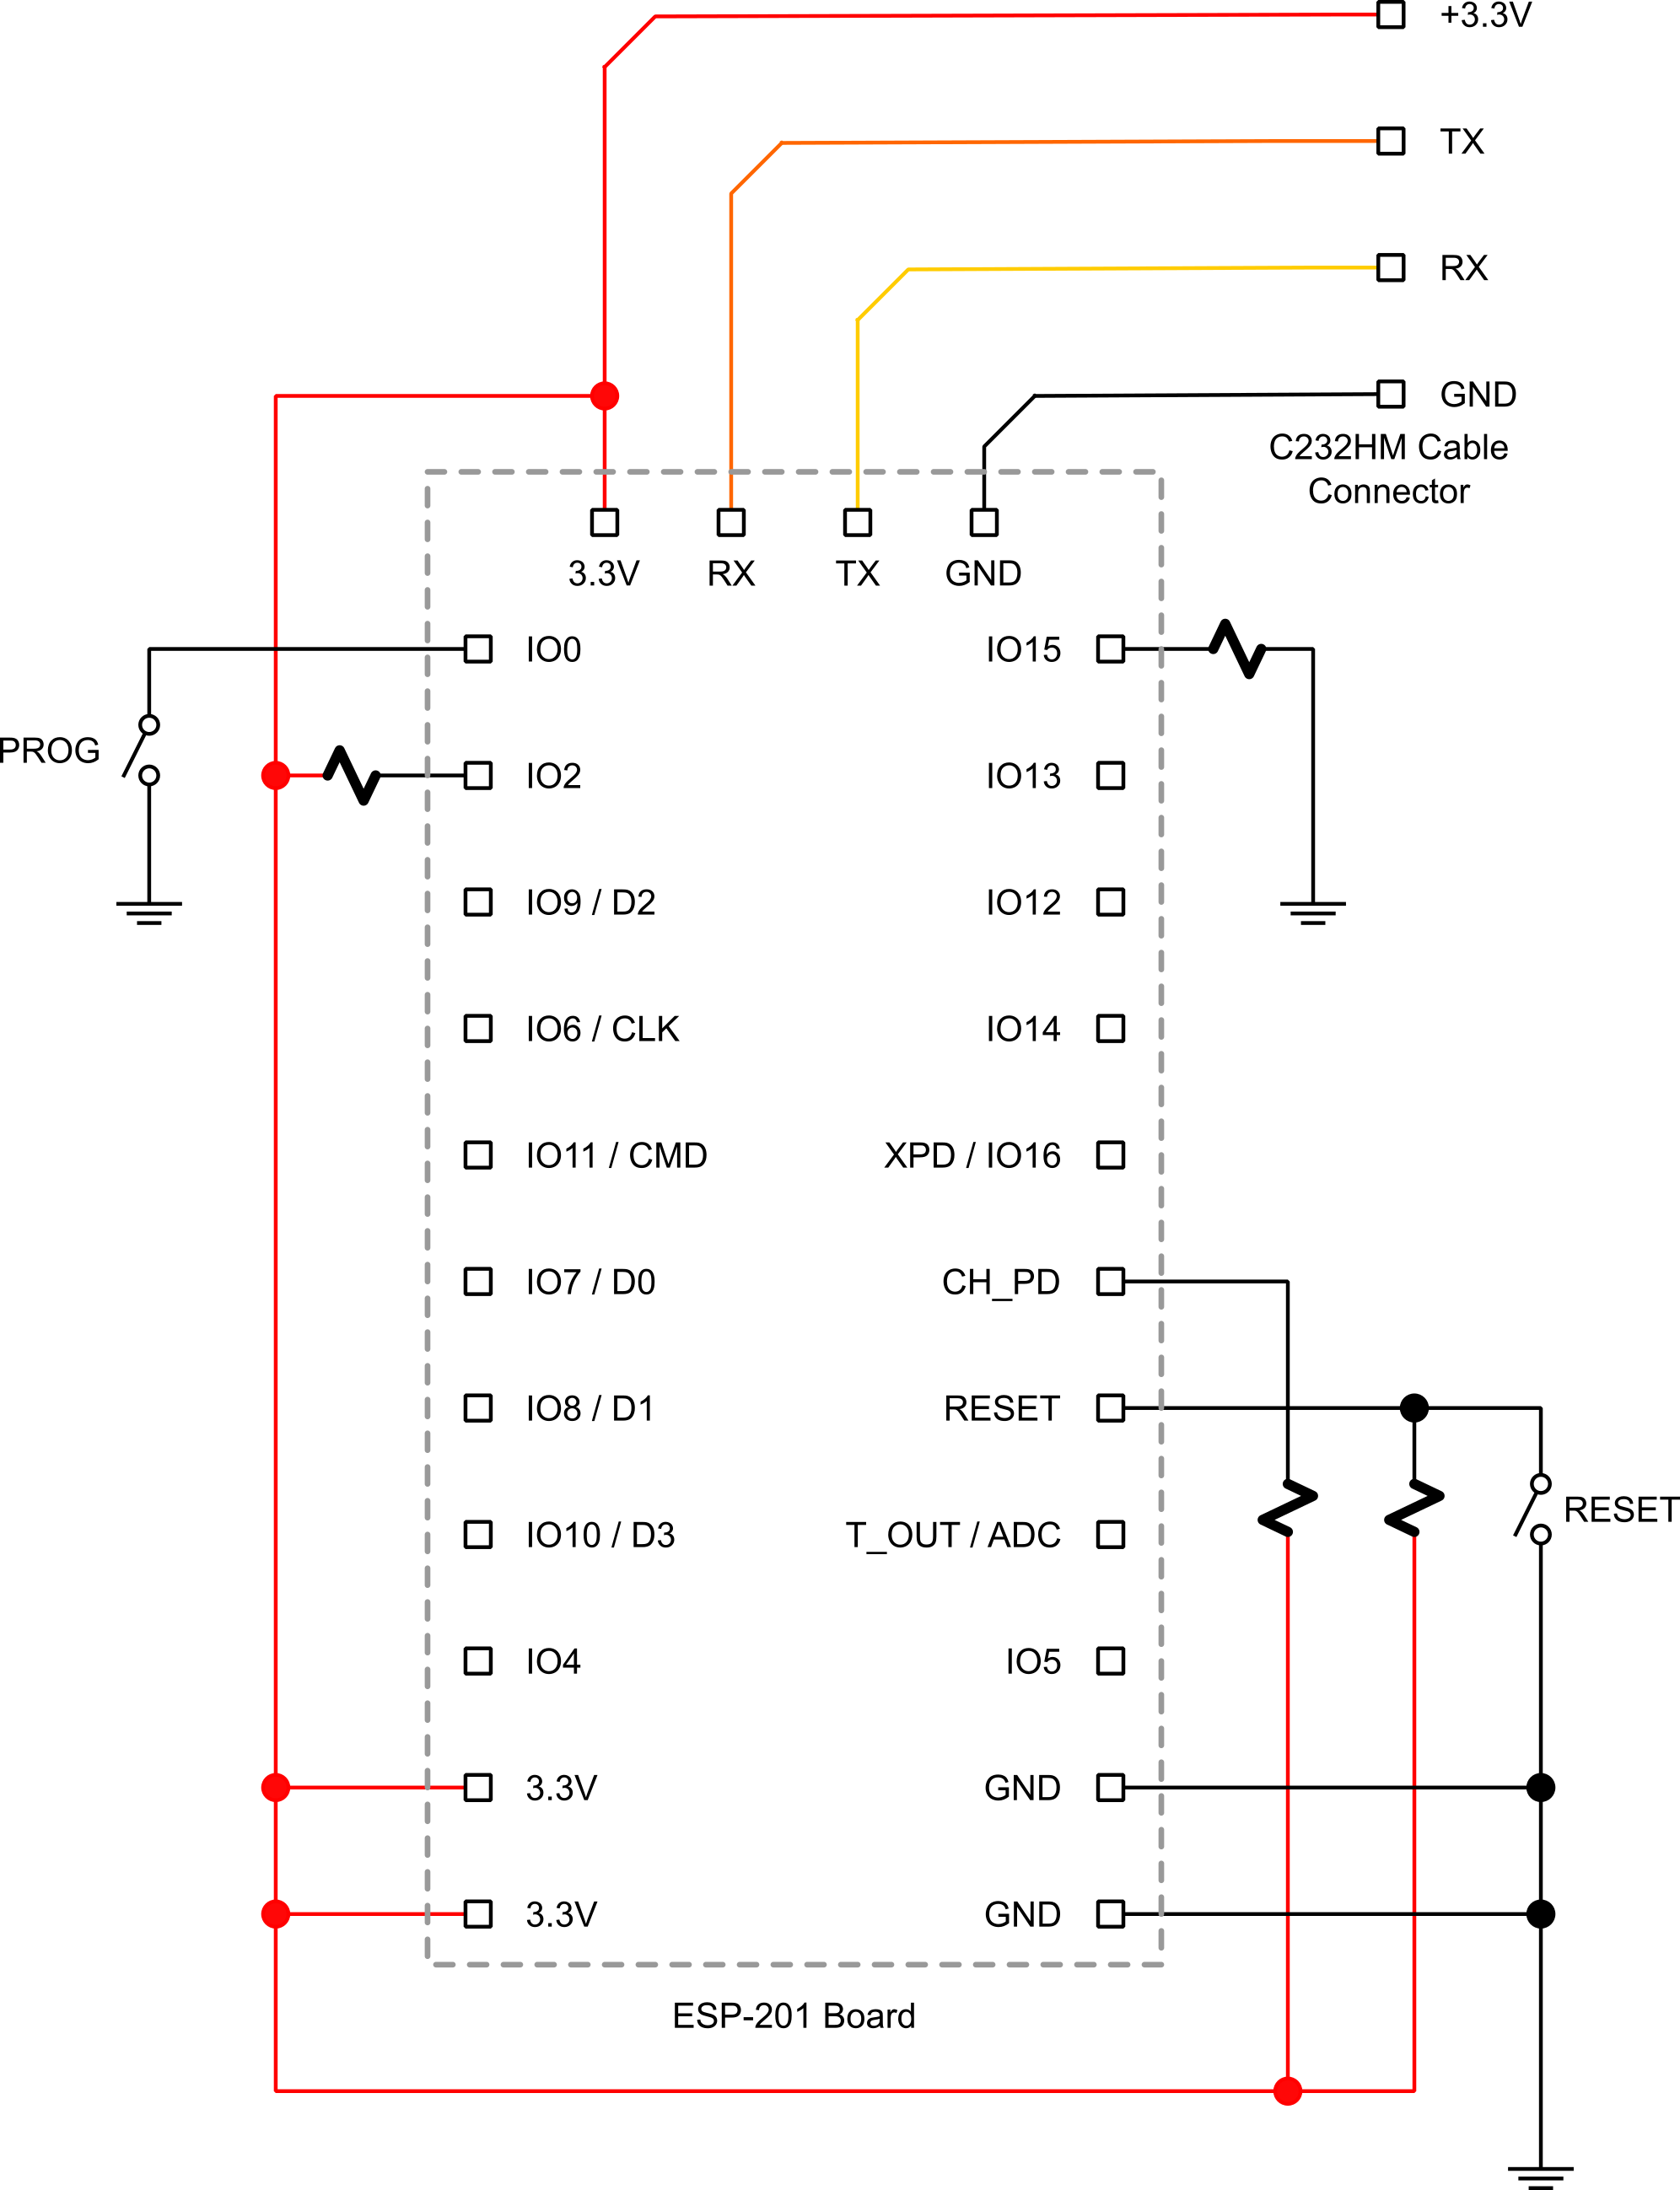 ESP-201 flash programming board schematic.